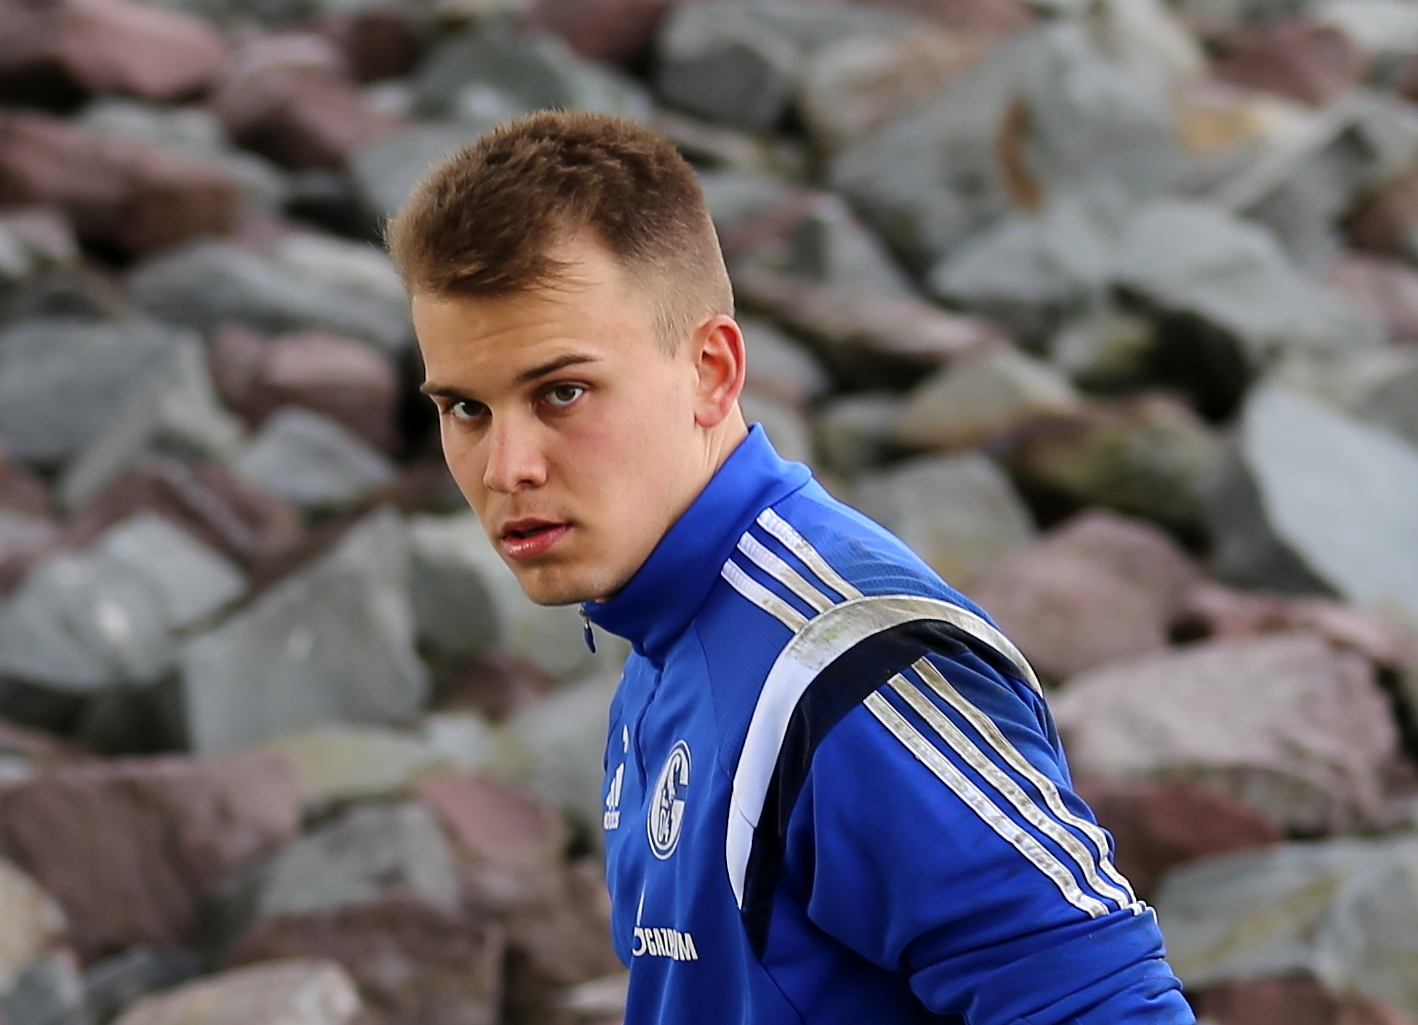 The 22-year old son of father (?) and mother(?) Timon Wellenreuther in 2018 photo. Timon Wellenreuther earned a  million dollar salary - leaving the net worth at 0.12 million in 2018